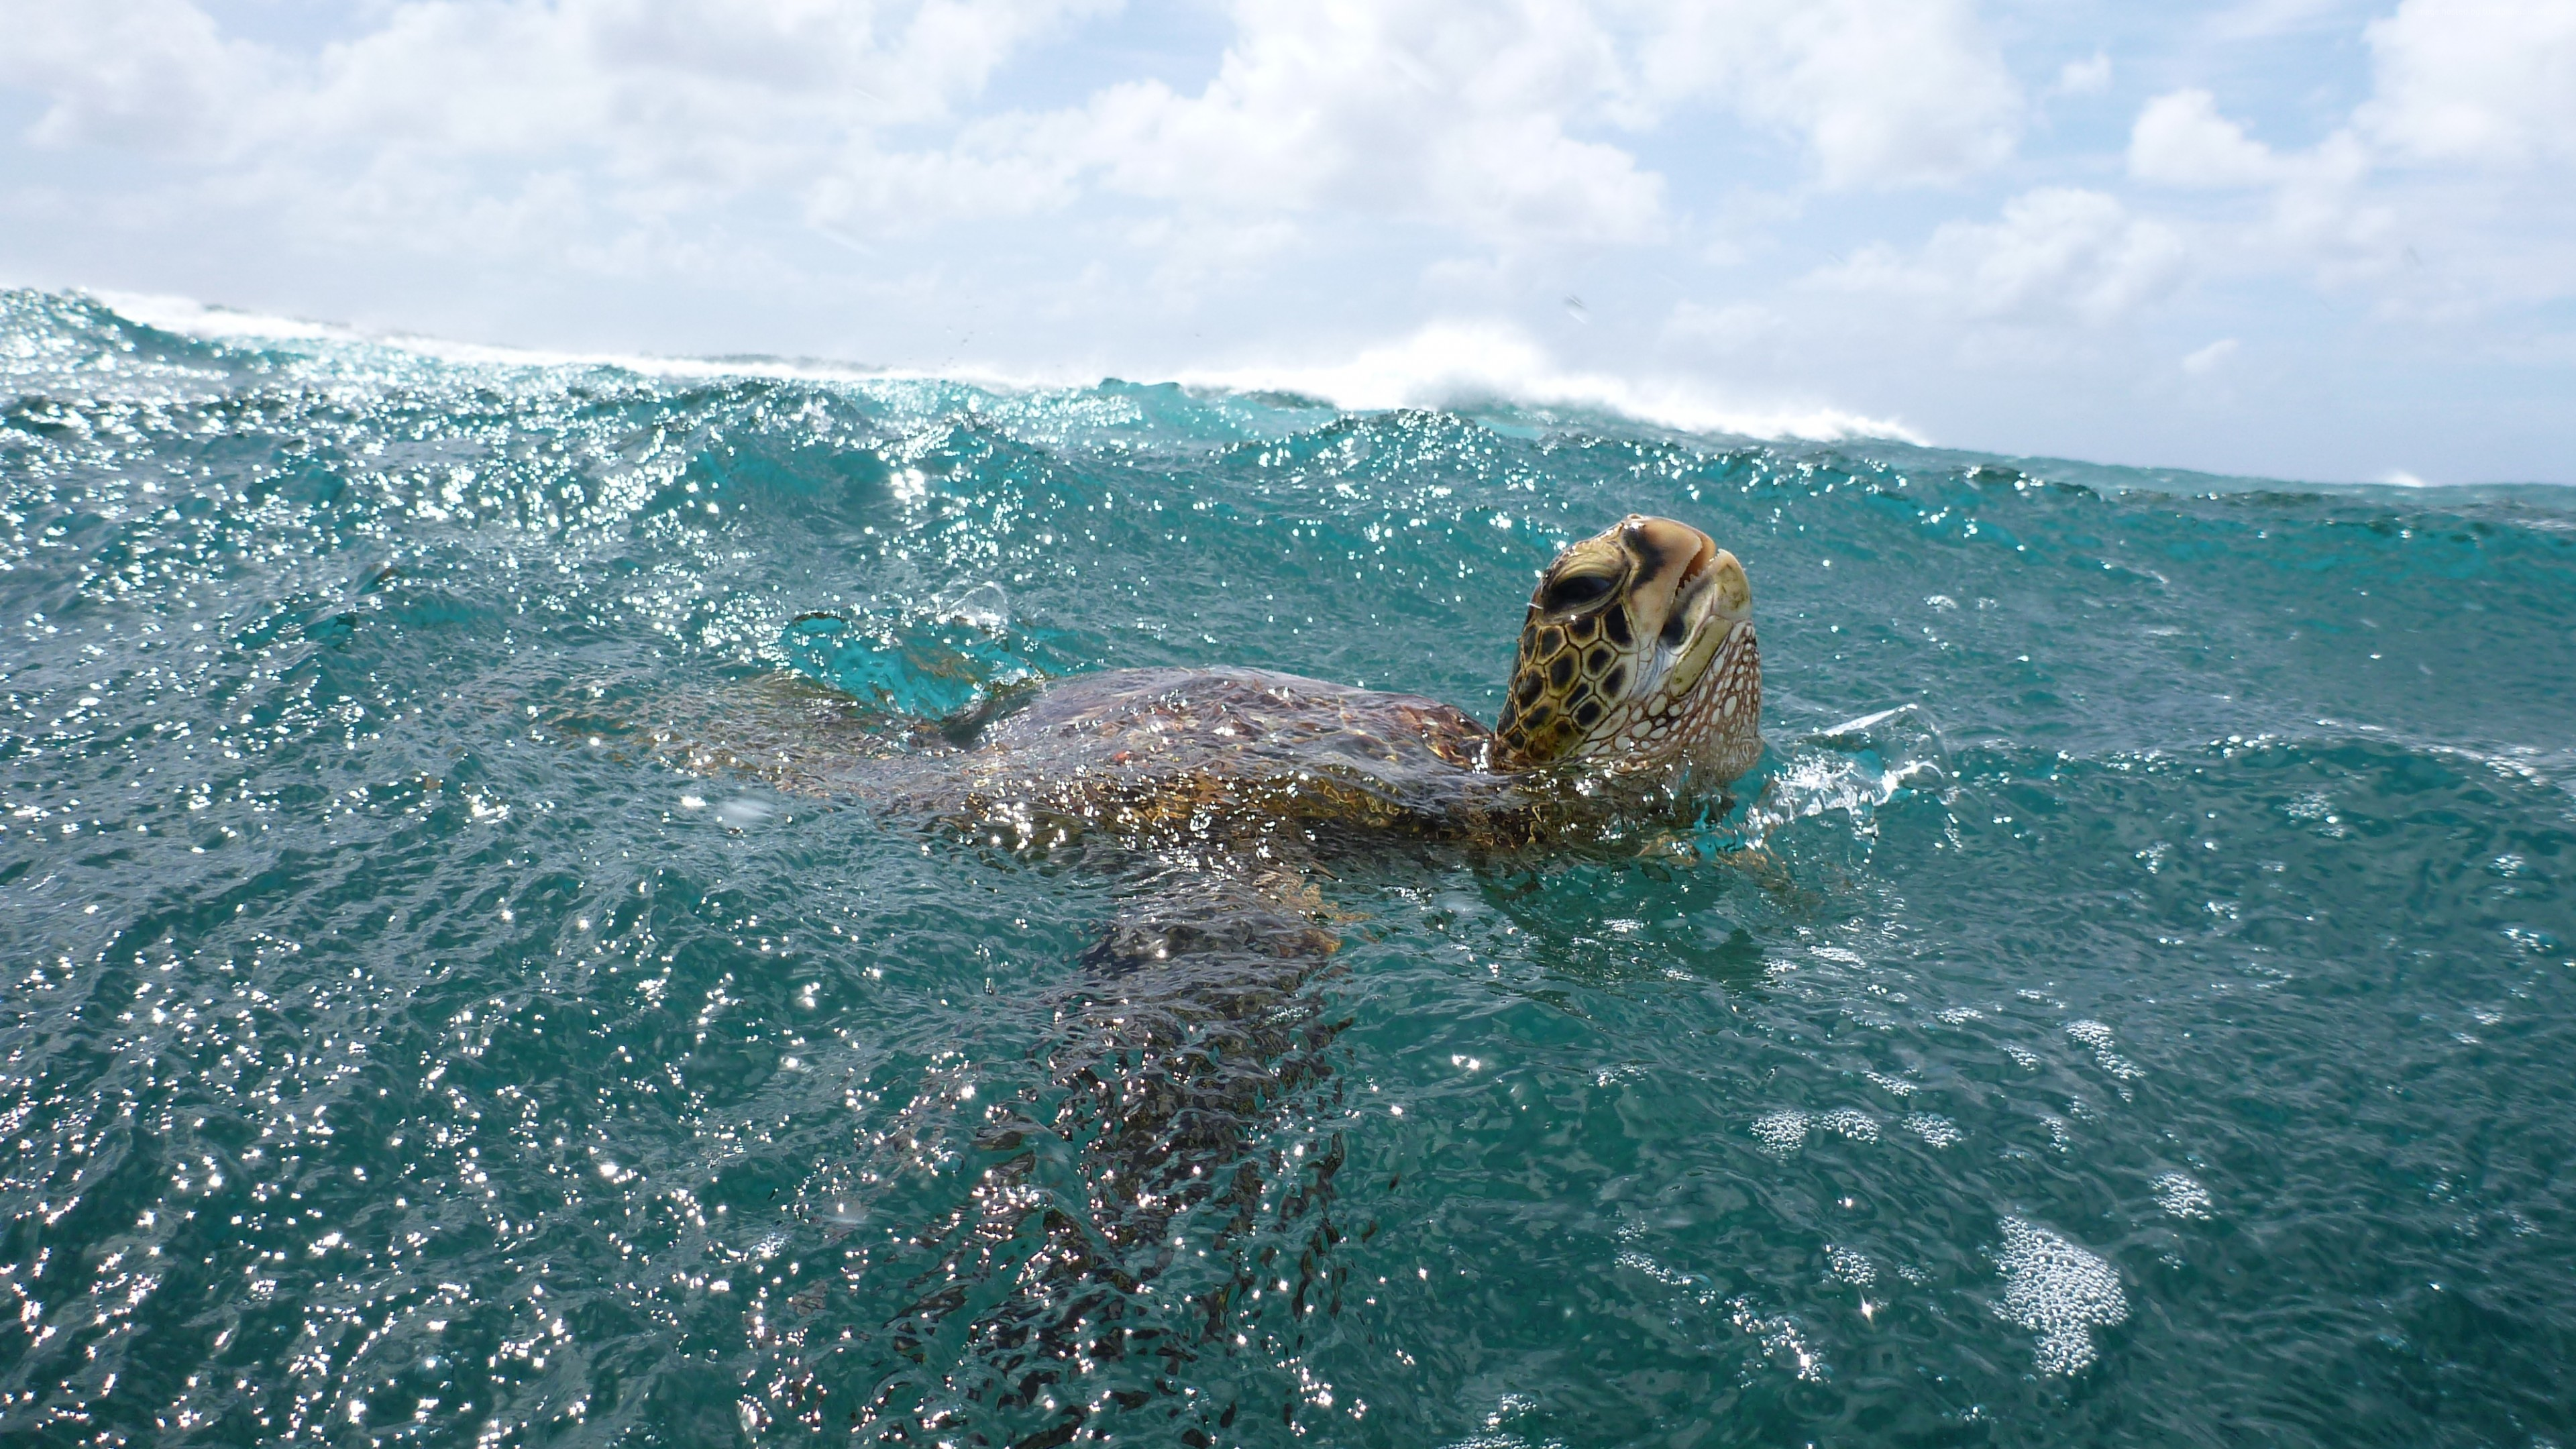 Wallpaper Turtle, surfing, water, sea, ocean, underwater, animal, sky, clouds, Malaysia, World&